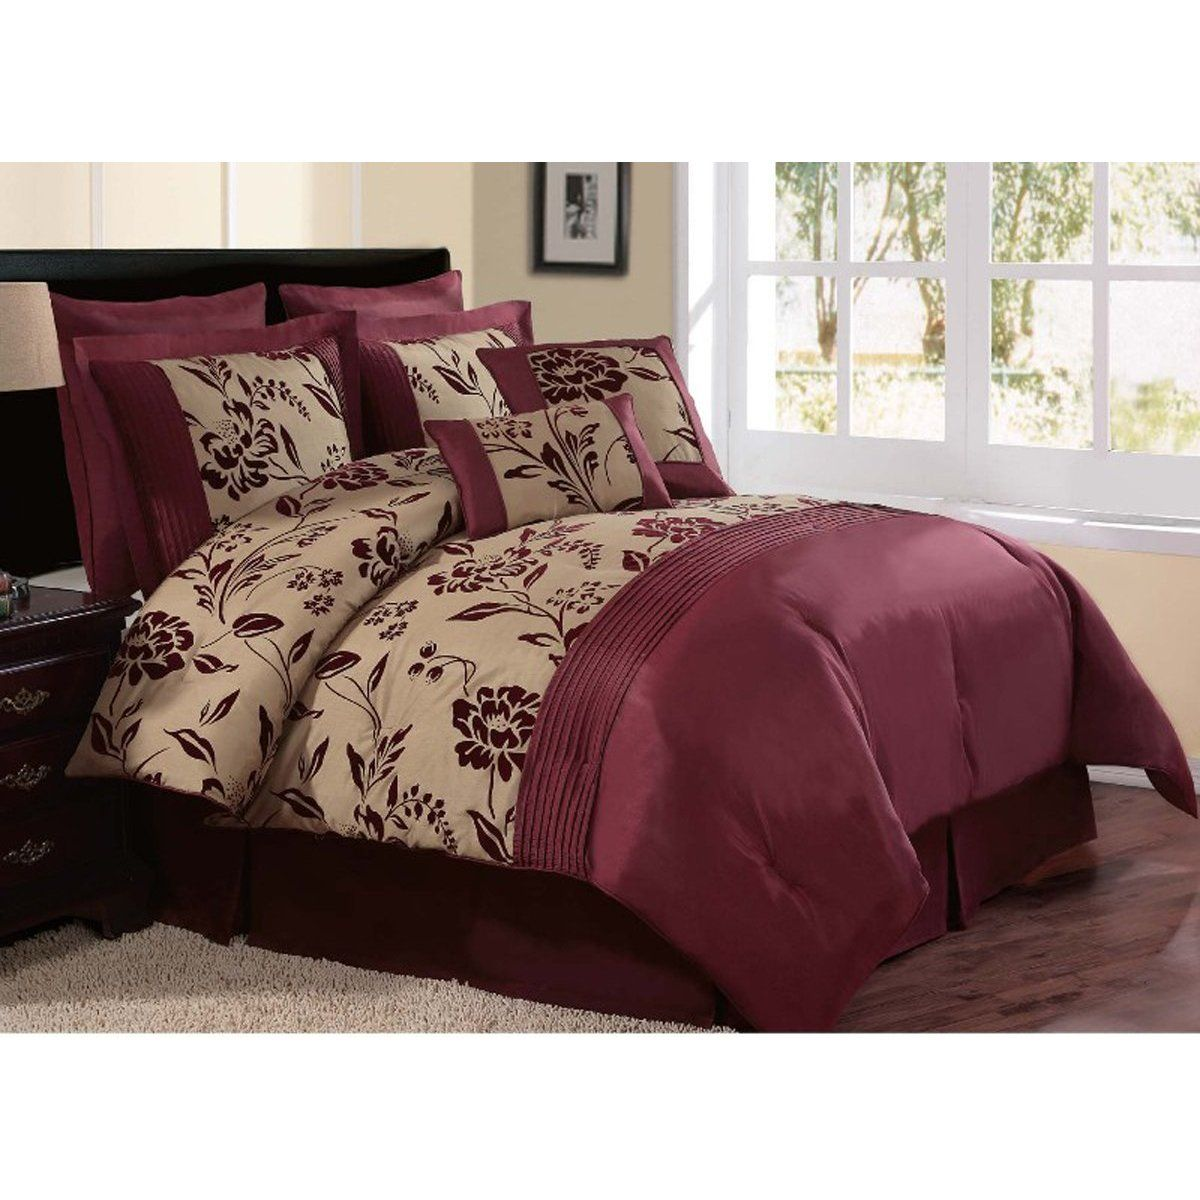 bedding sets xl comforter navy twin reversible p soft truly maroon set burgundy and everyday